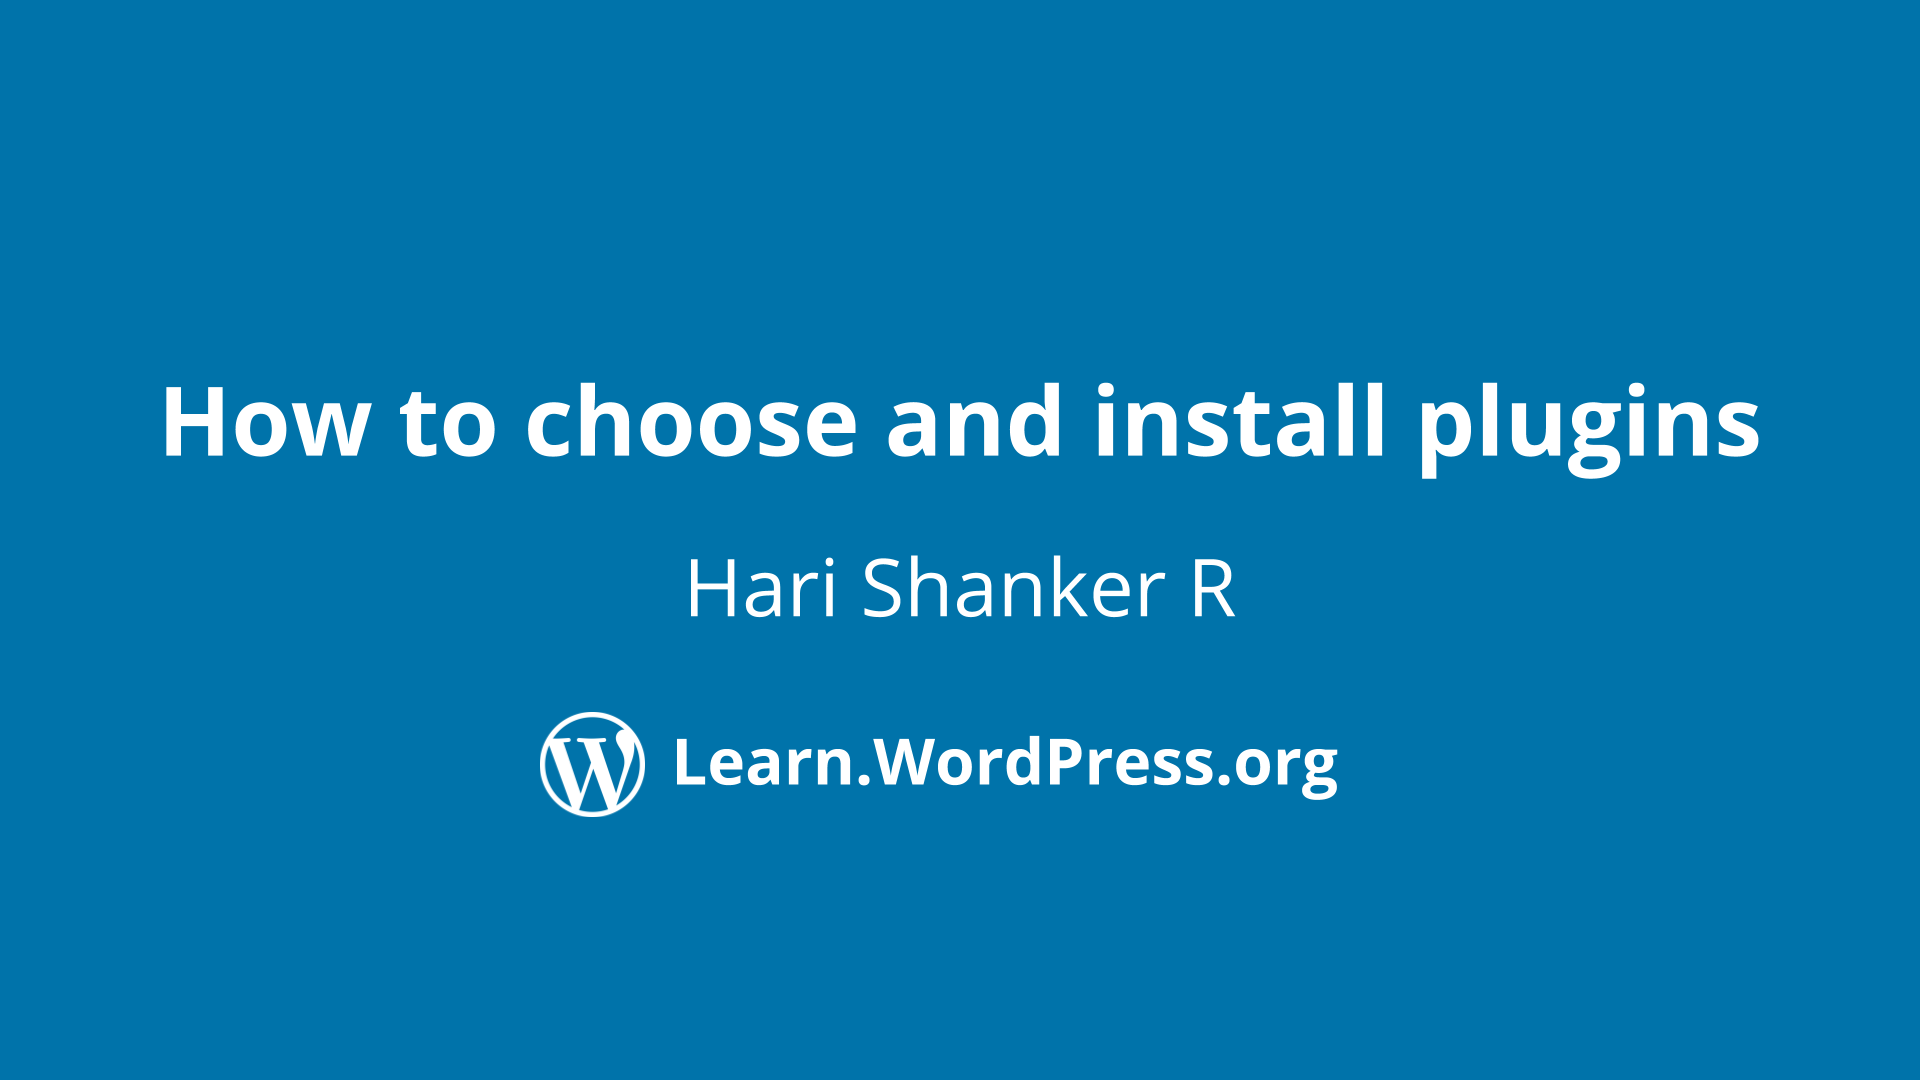 Hari Shanker: How to choose and install plugins